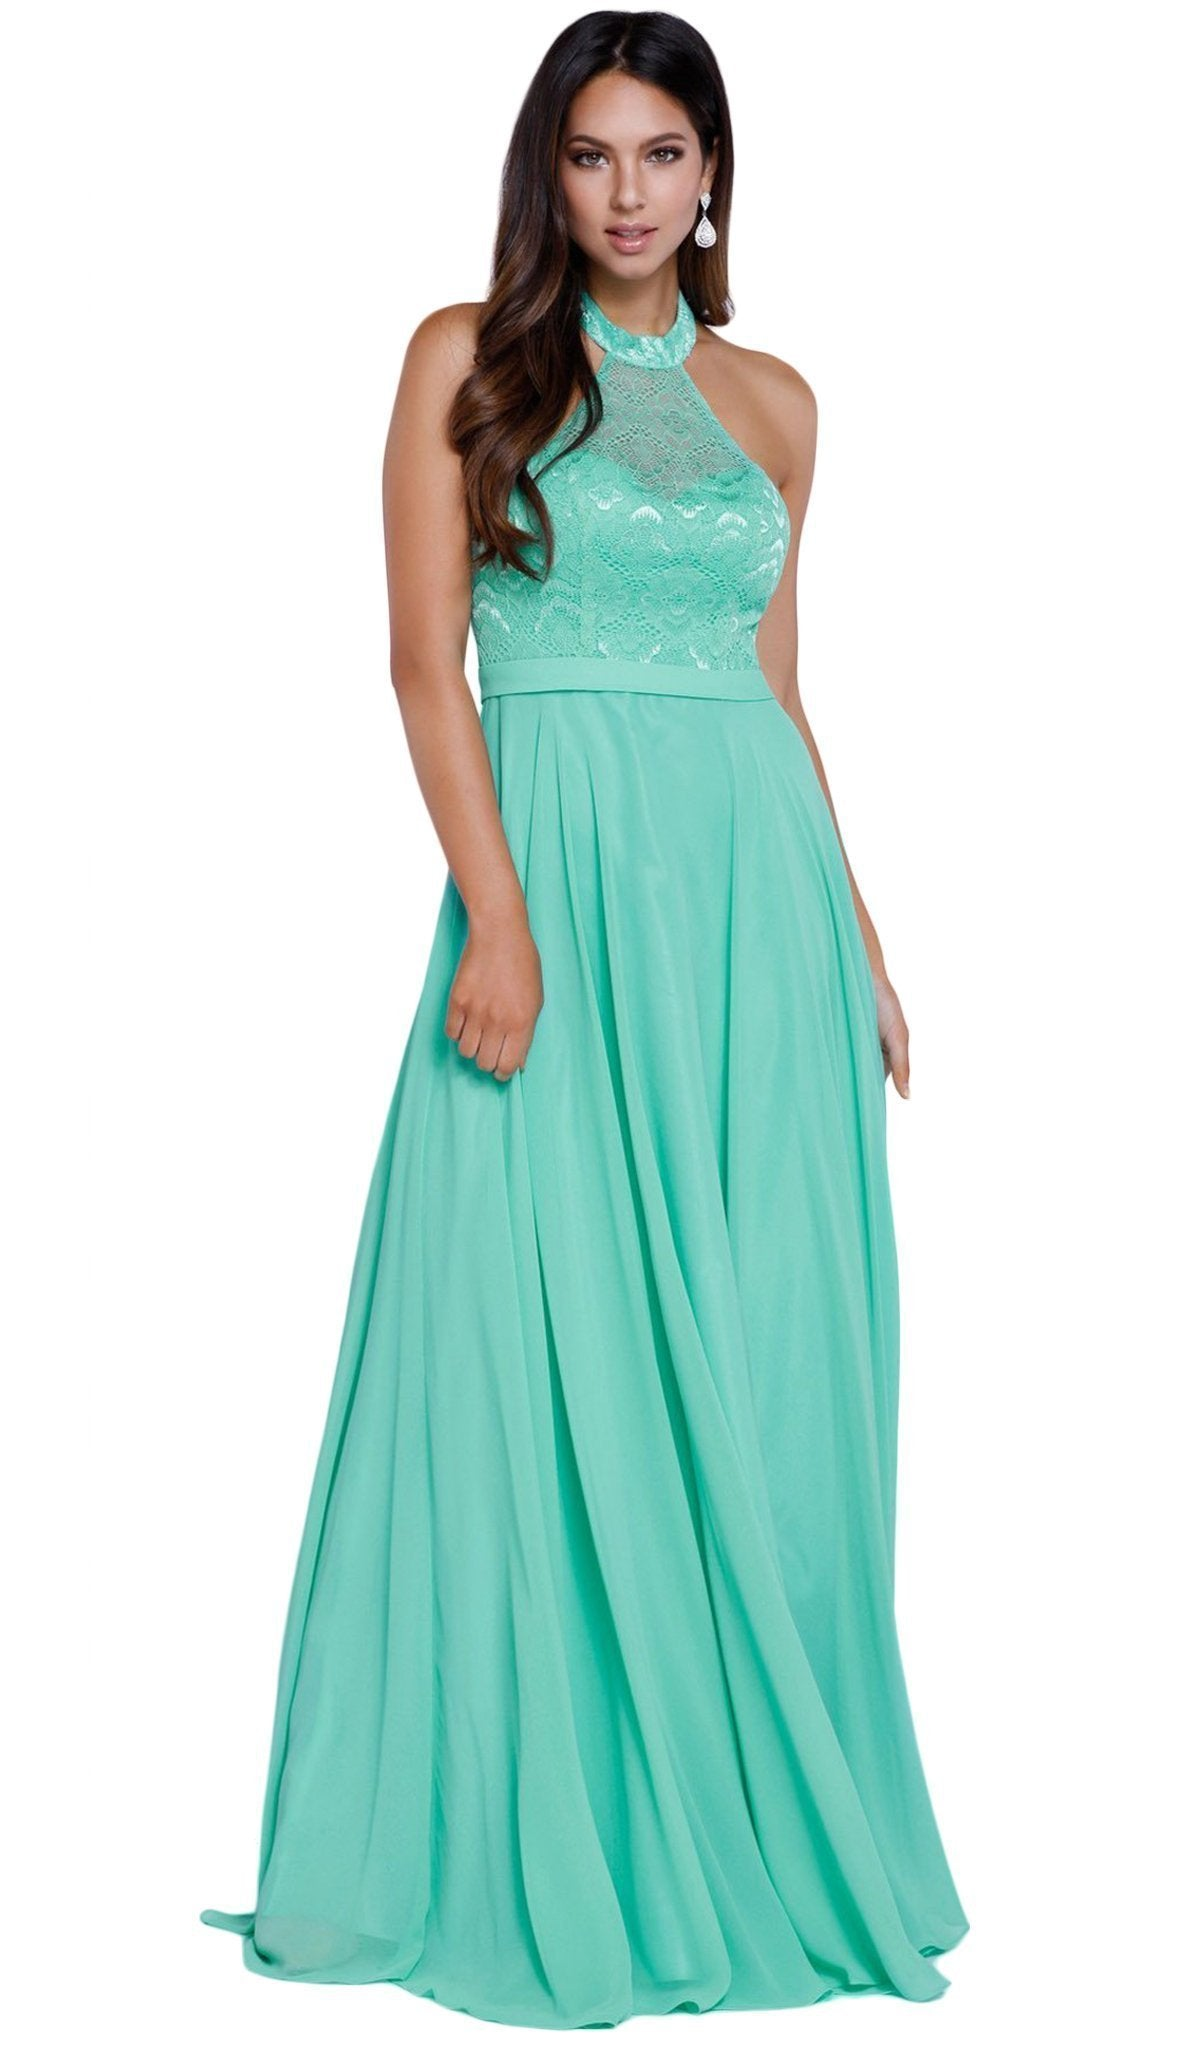 Nox Anabel - Lace Halter Neck Long Evening Gown 8233SC